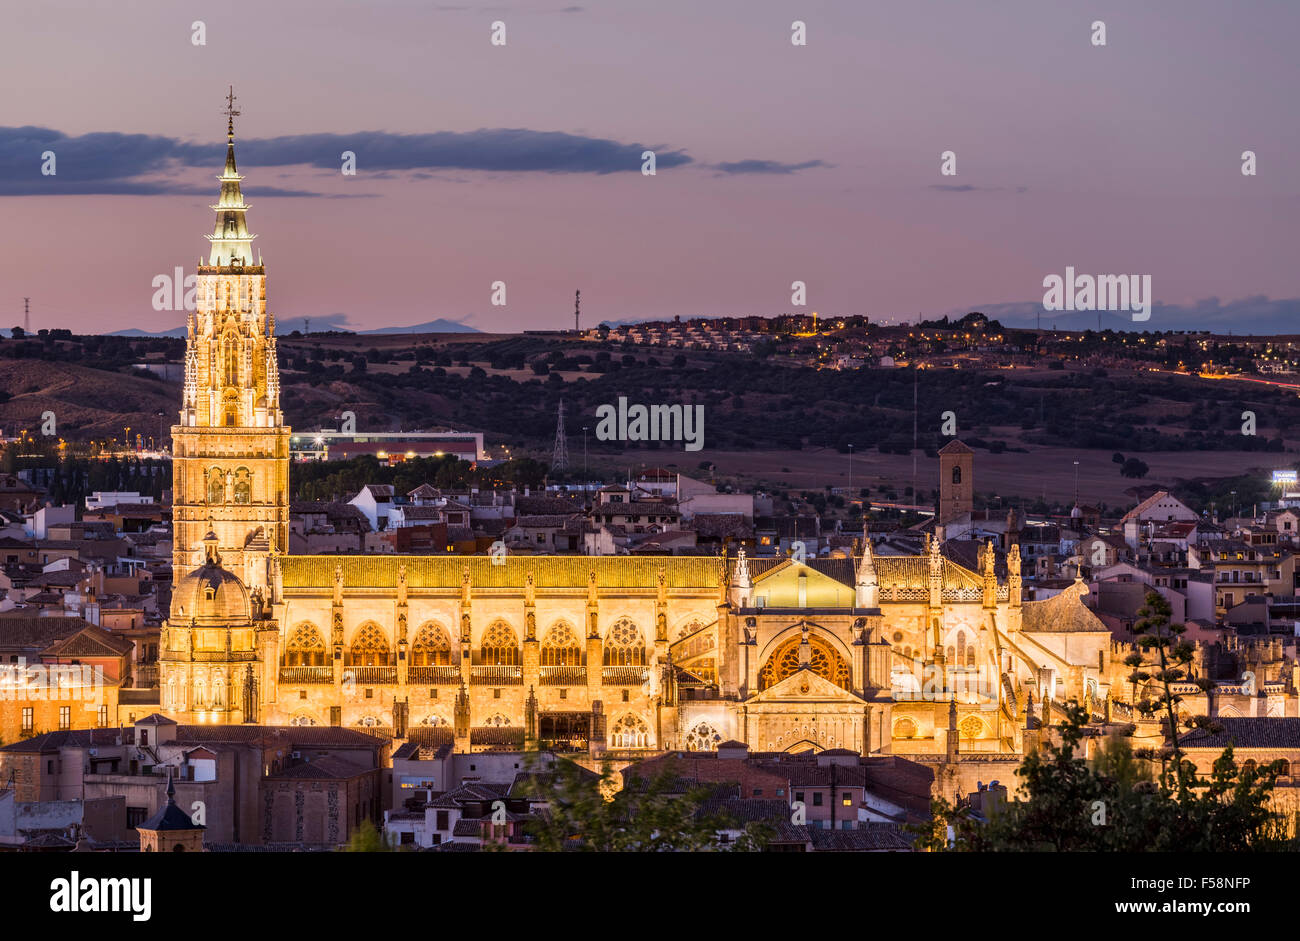 Toledo, Spain, Europe - with floodlit Toledo cathedral at night dusk - Stock Image